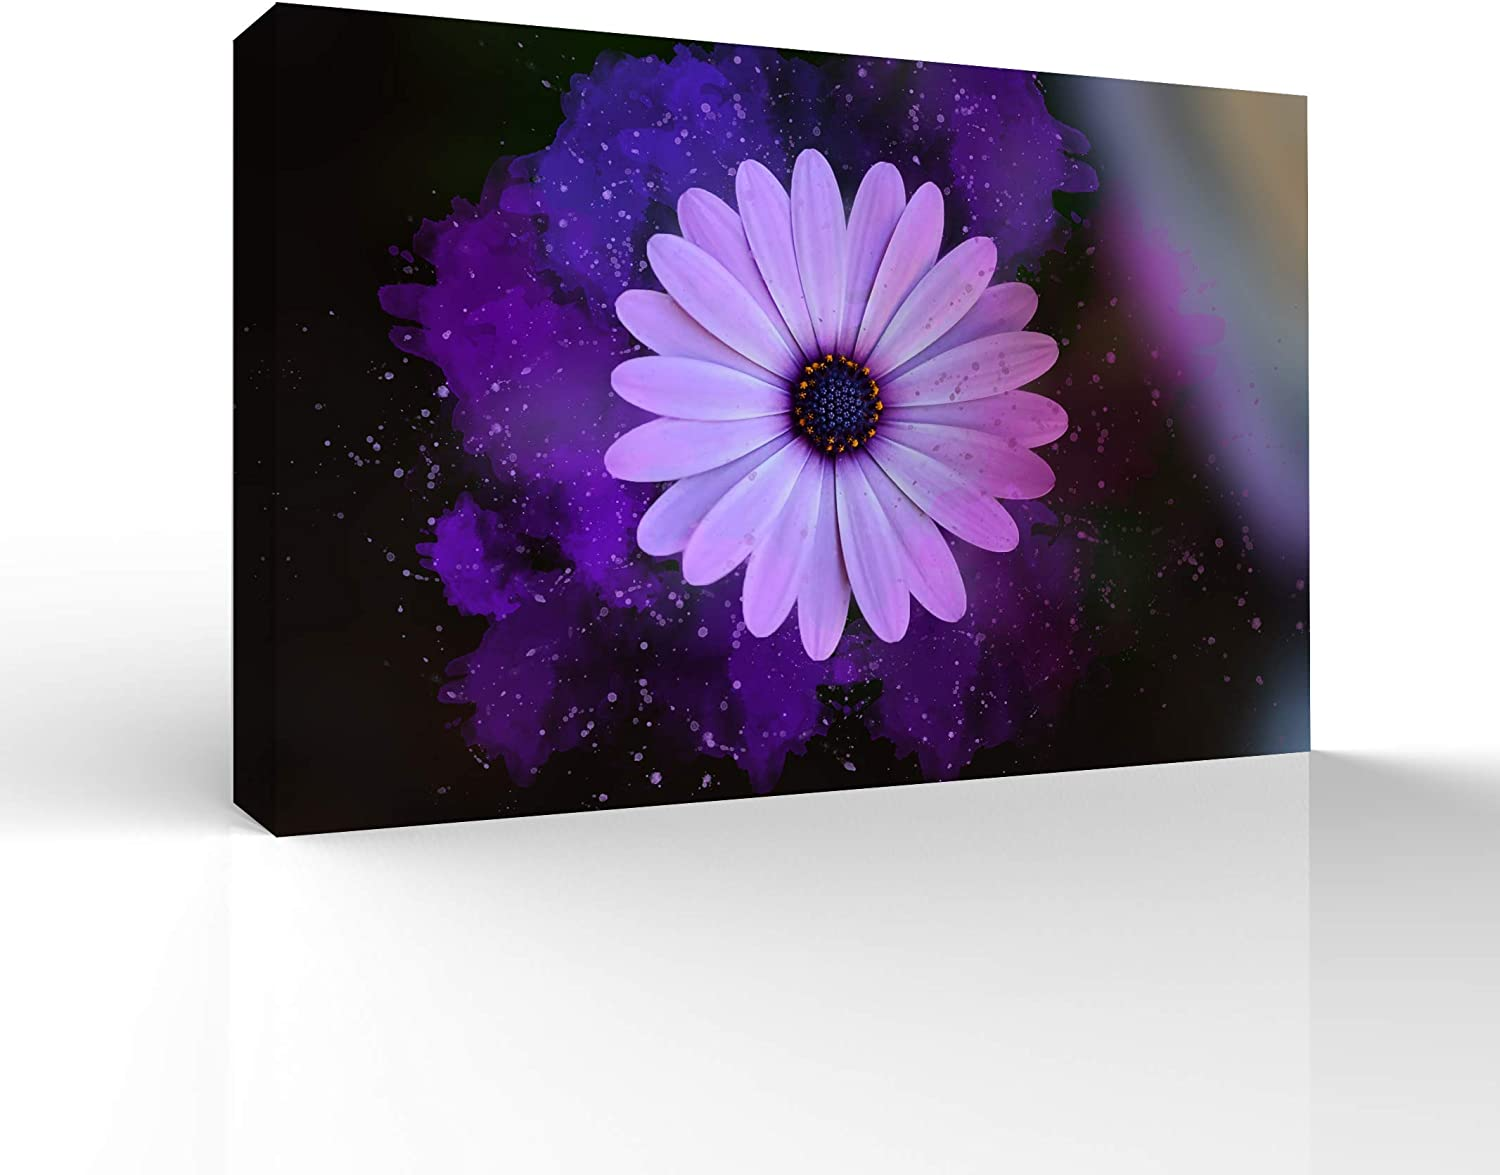 wall26 Canvas Wall Art Beautiful Flowers Pictures Home Wall Decorations for Bedroom Living Room Paintings Canvas Prints Framed - 16x24 inches